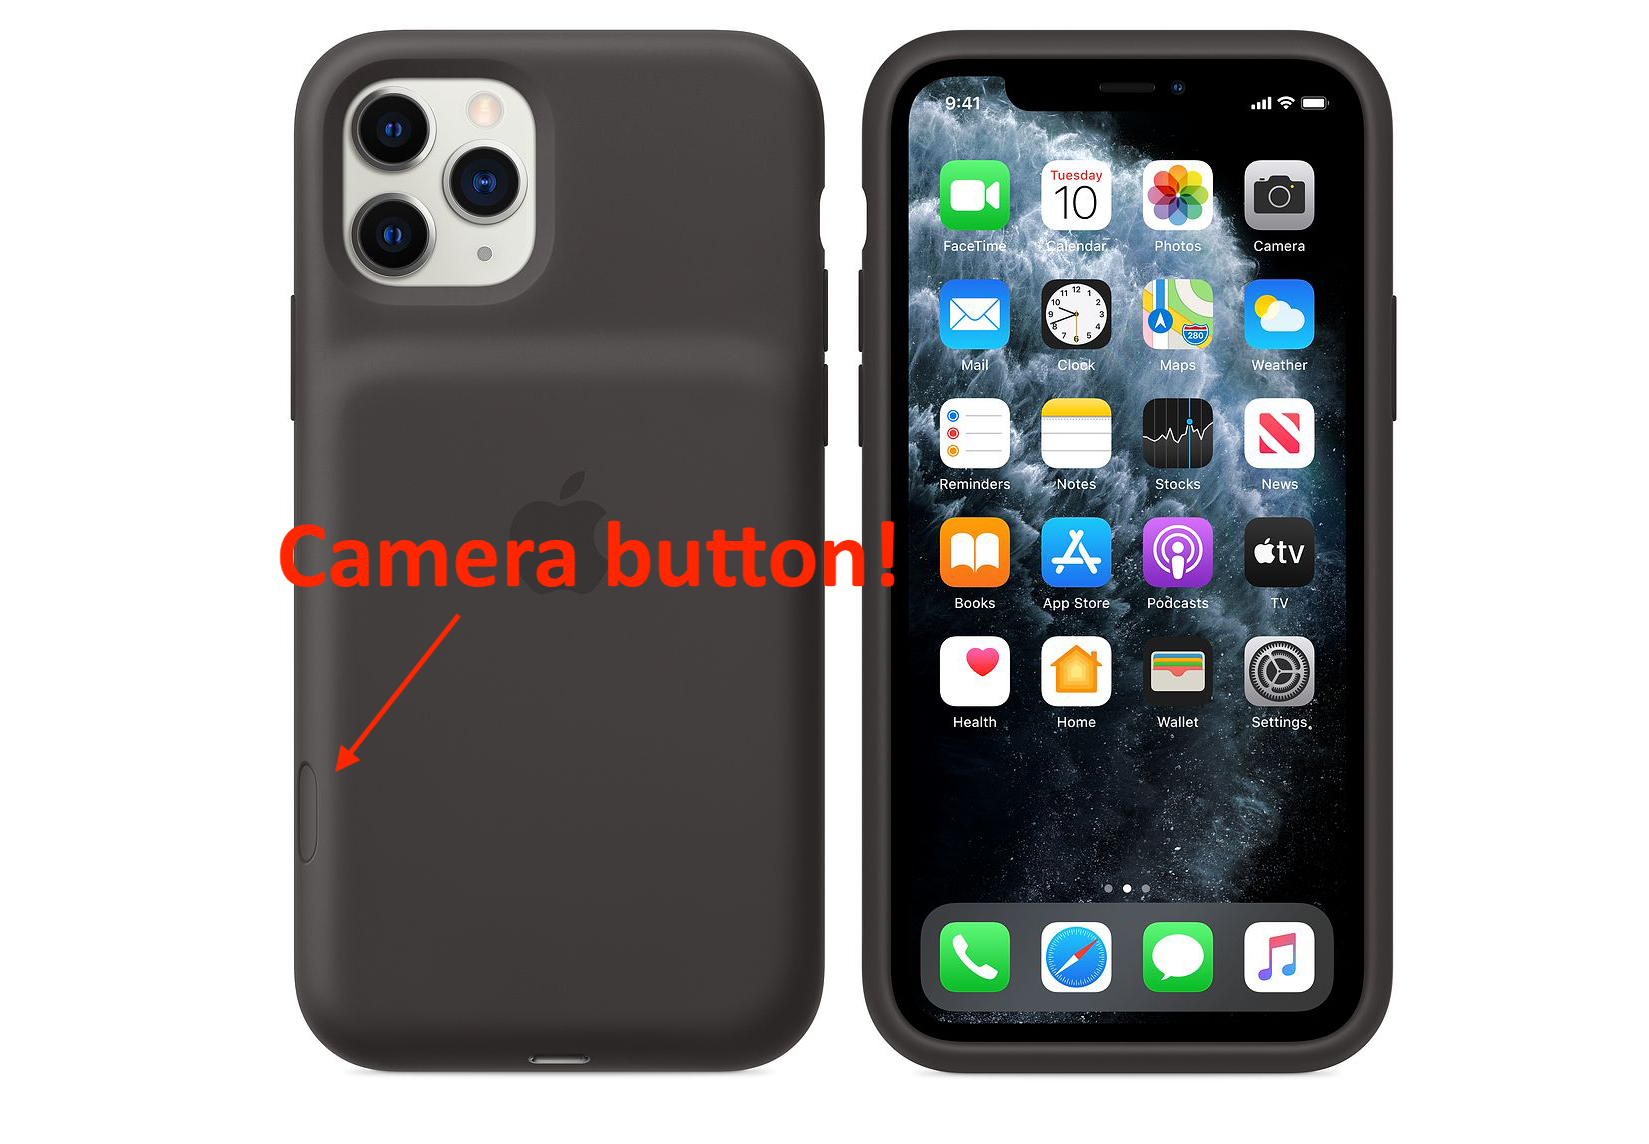 IPhone 11 Series Smart Battery Cases Price, Design, Release Date